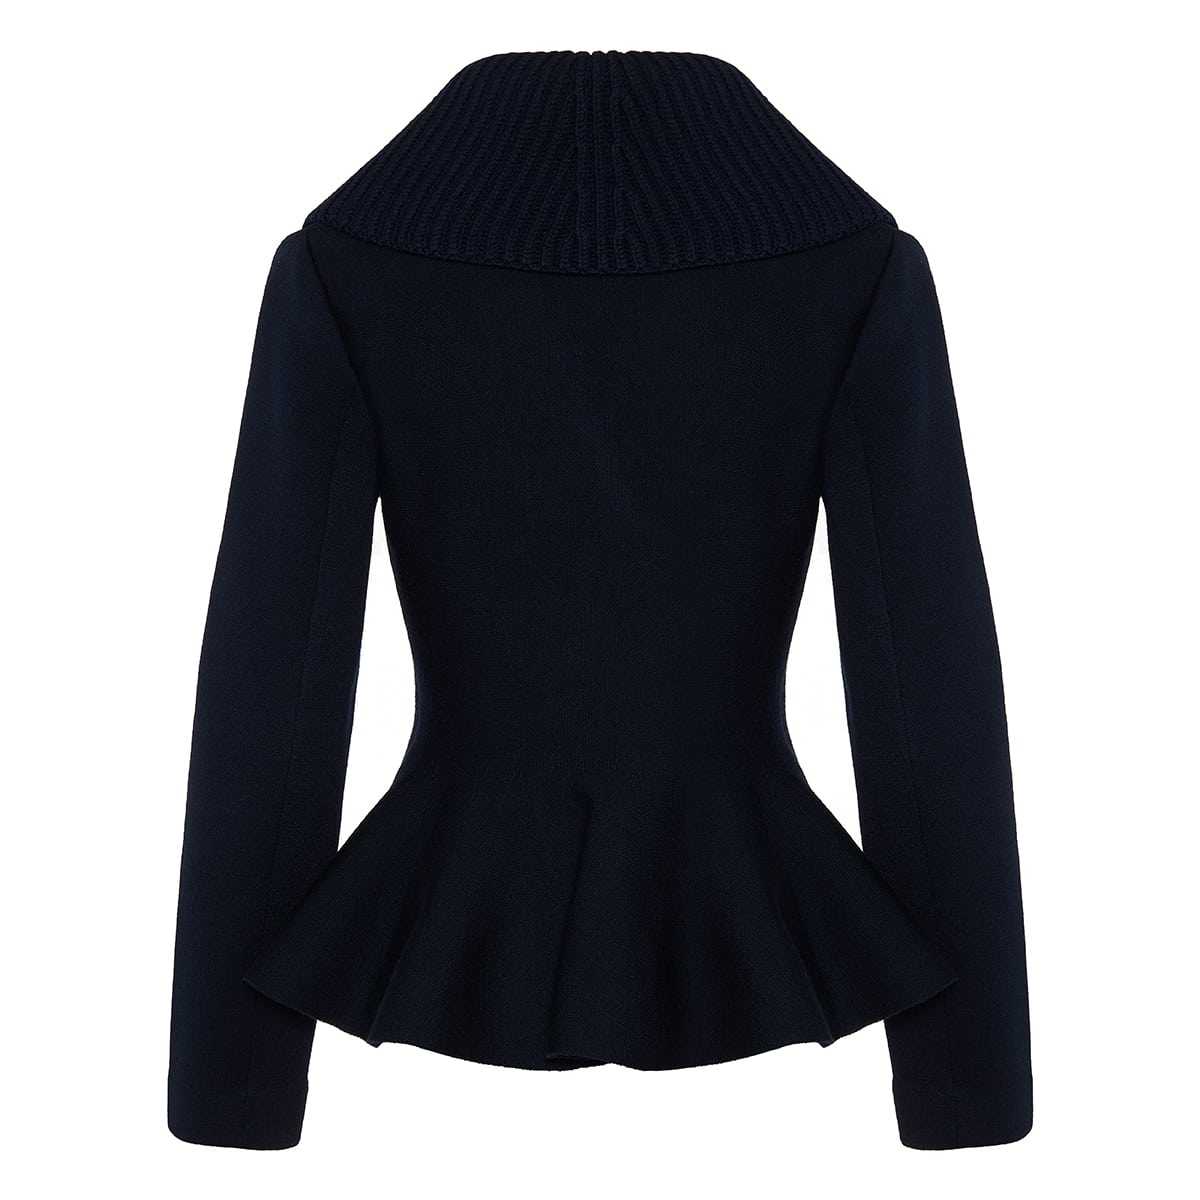 Double-breasted knitted peplum jacket